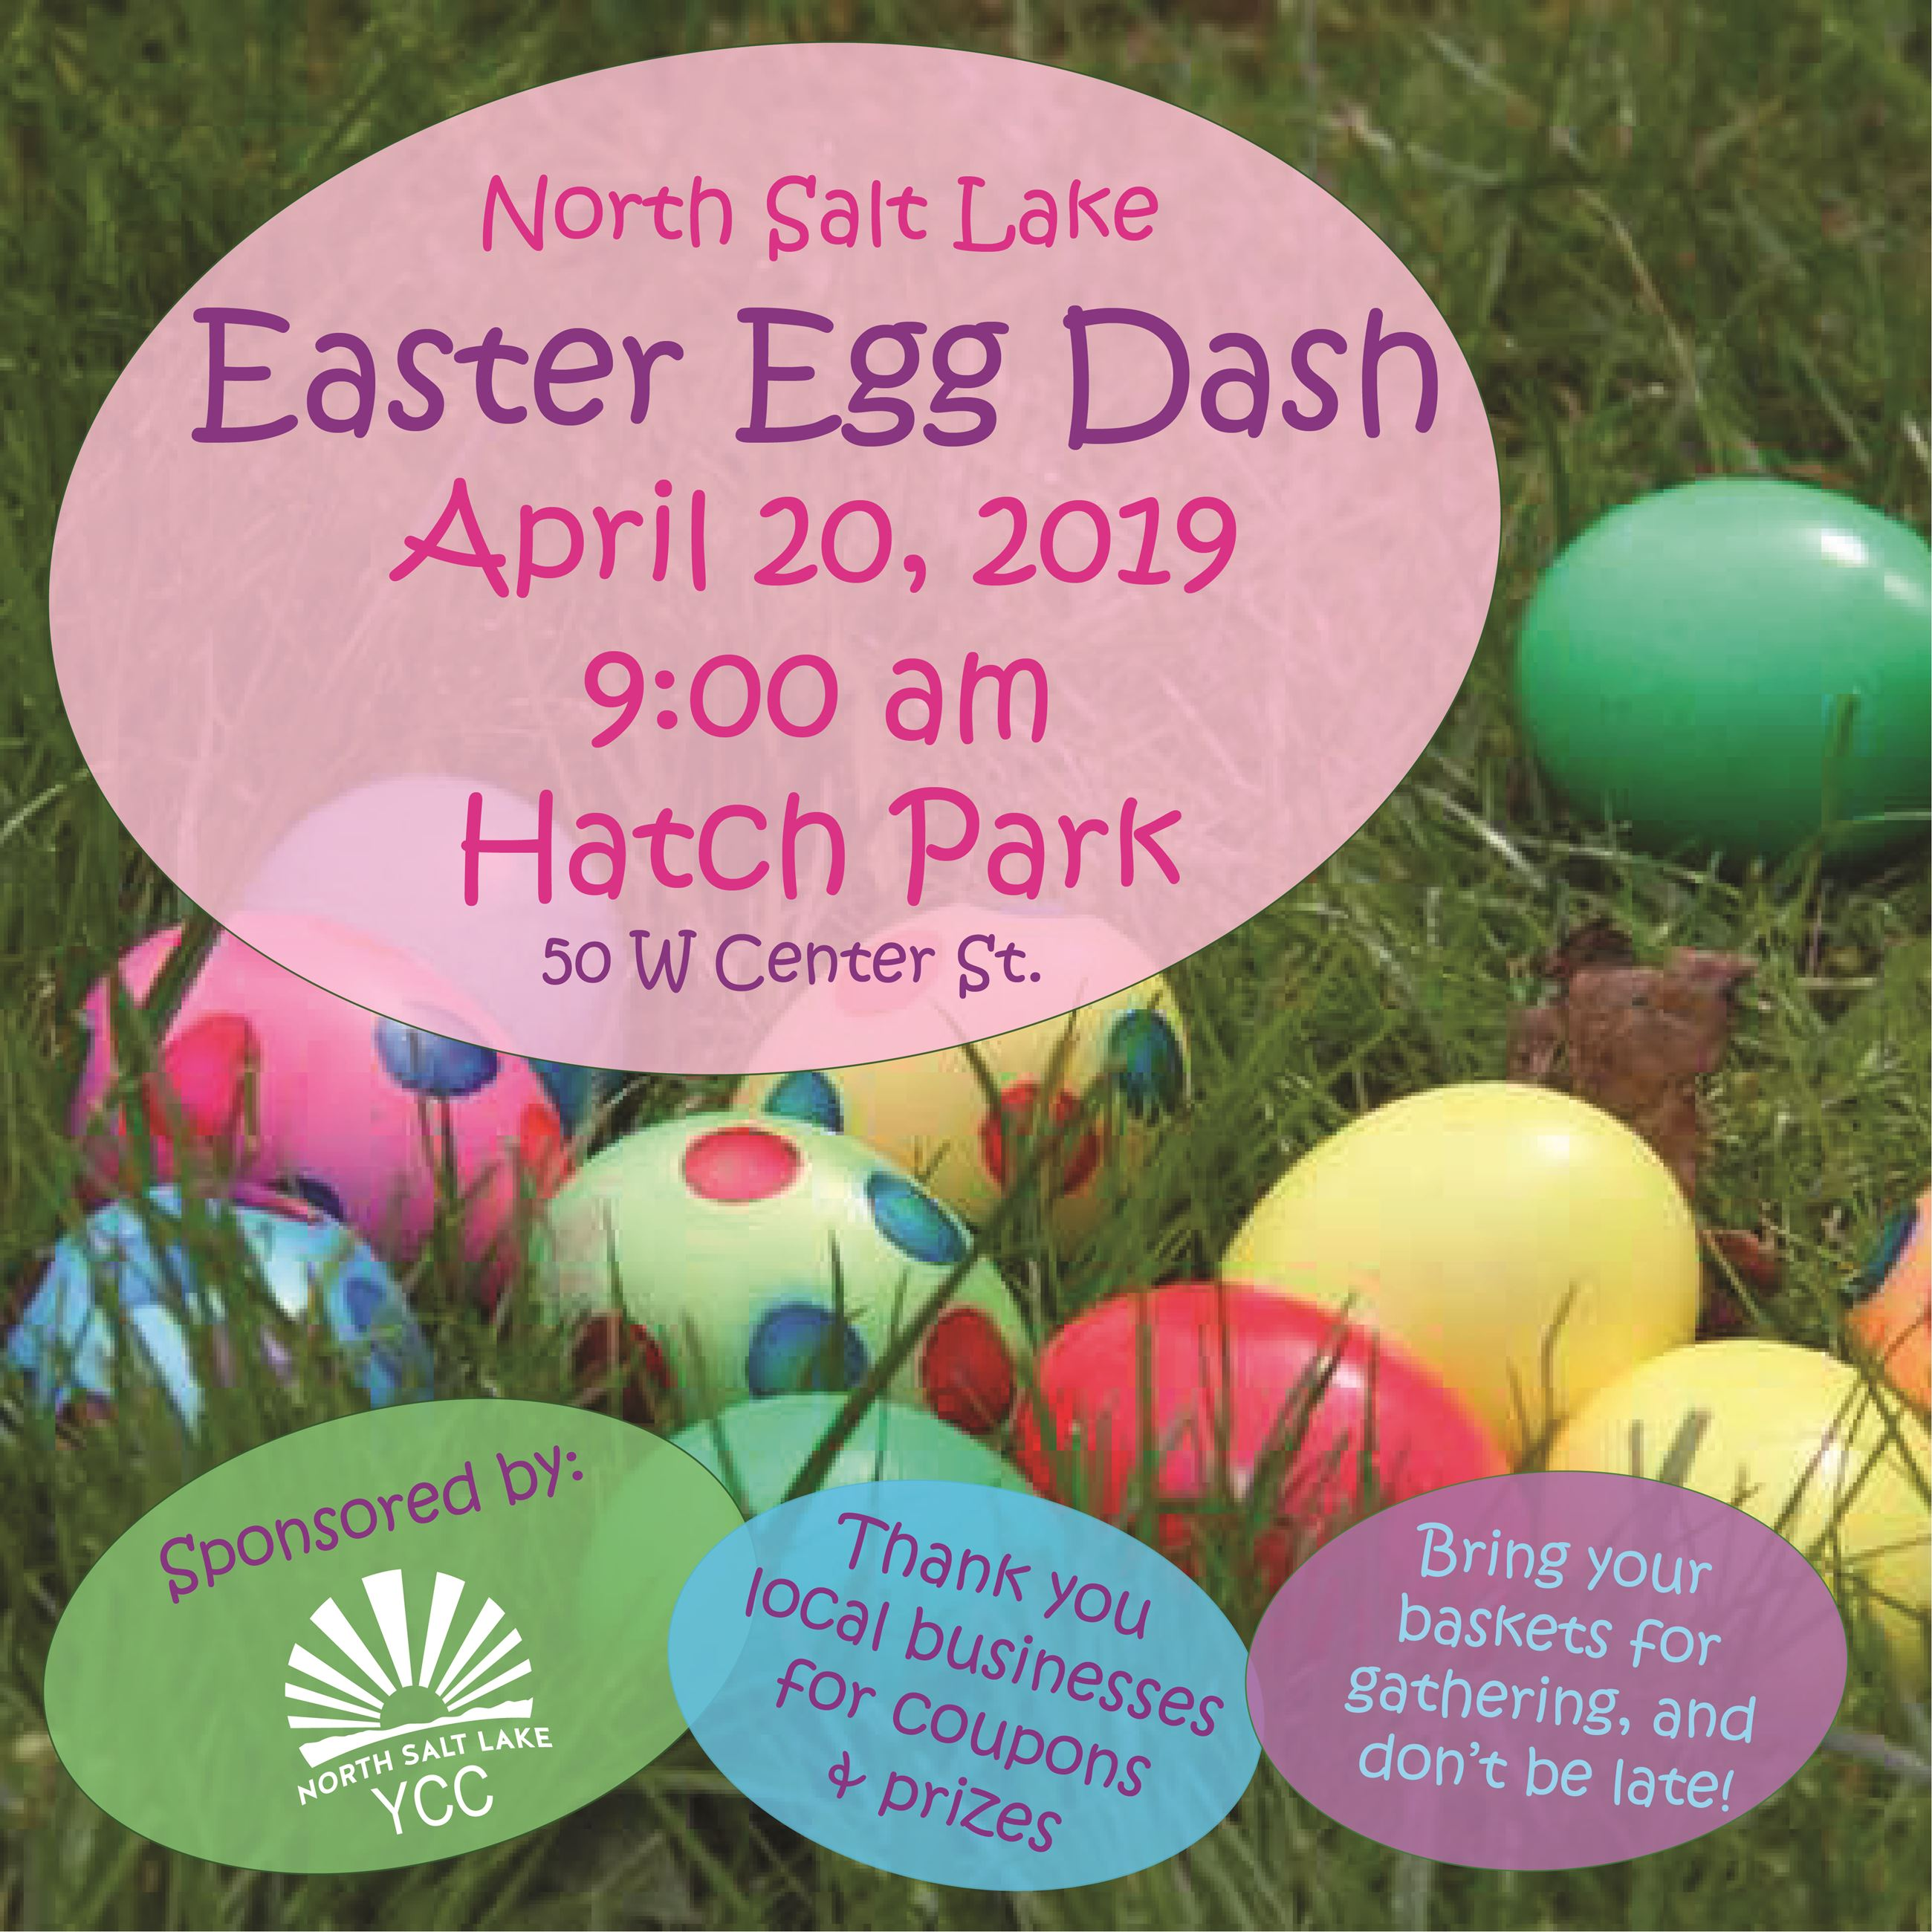 Easter Egg Dash 2019 Social Media Post